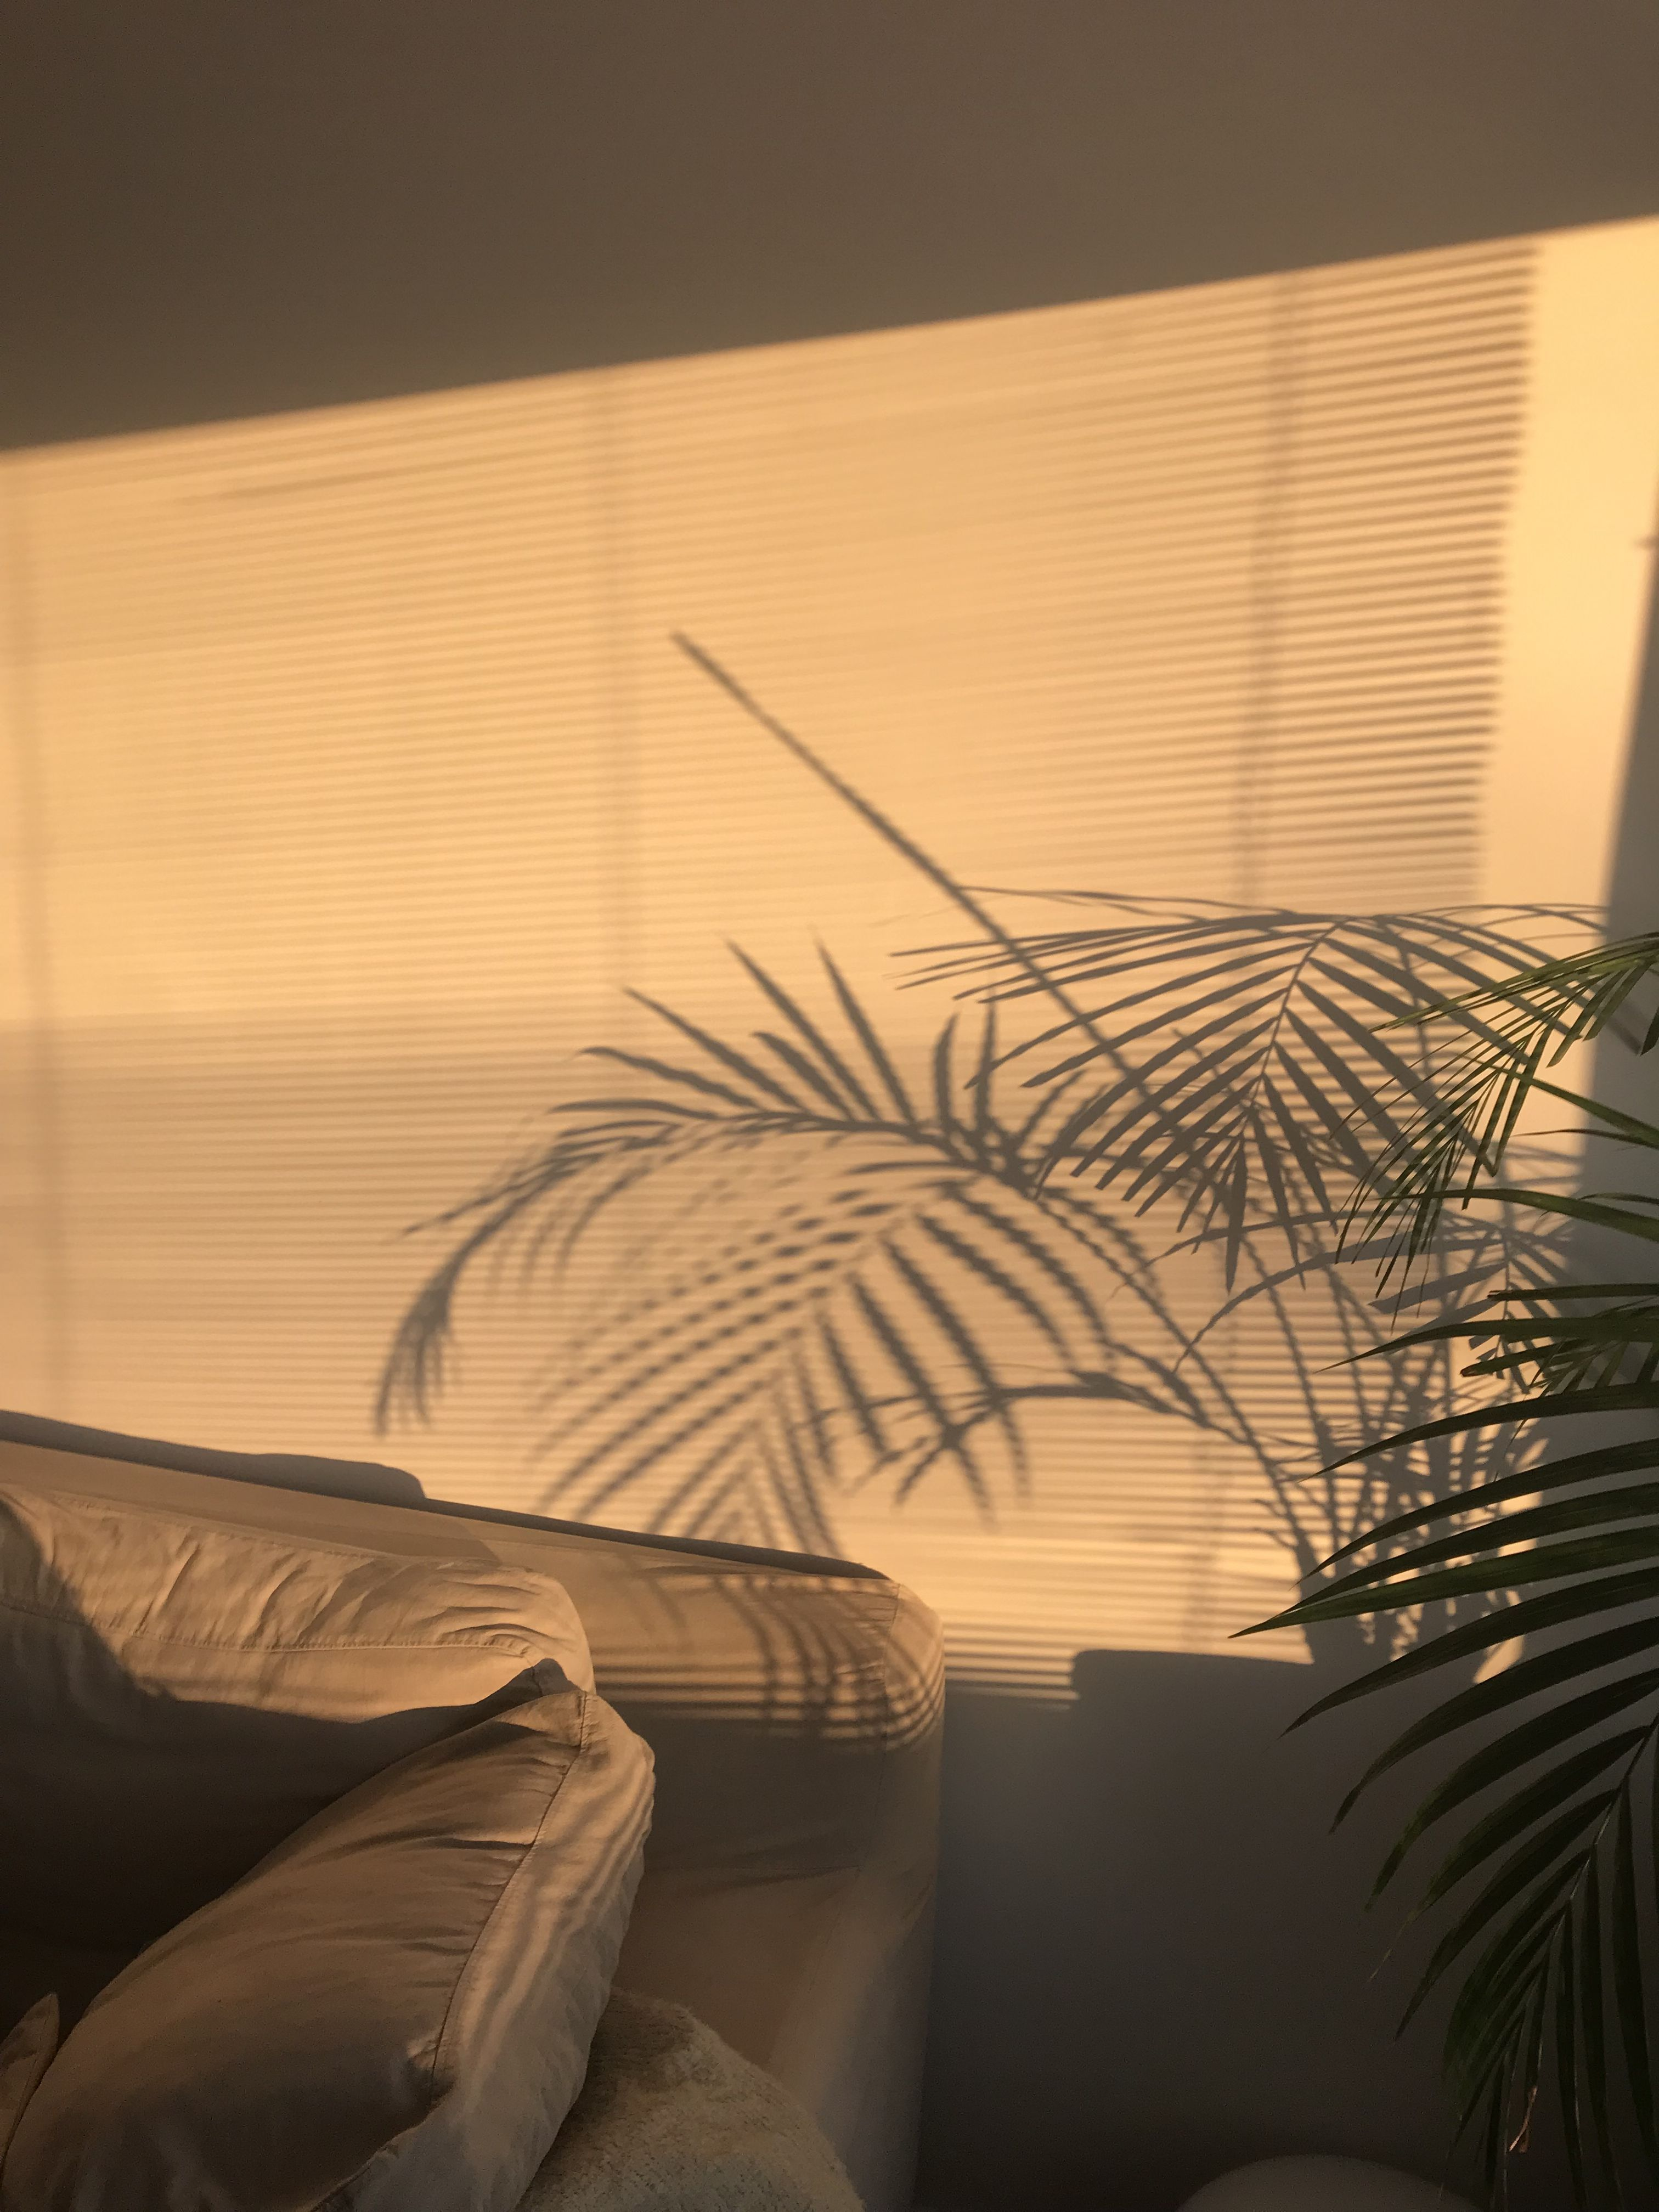 Best Aesthetic Golden Hour Yellow Chill Photography Goldenhour 400 x 300